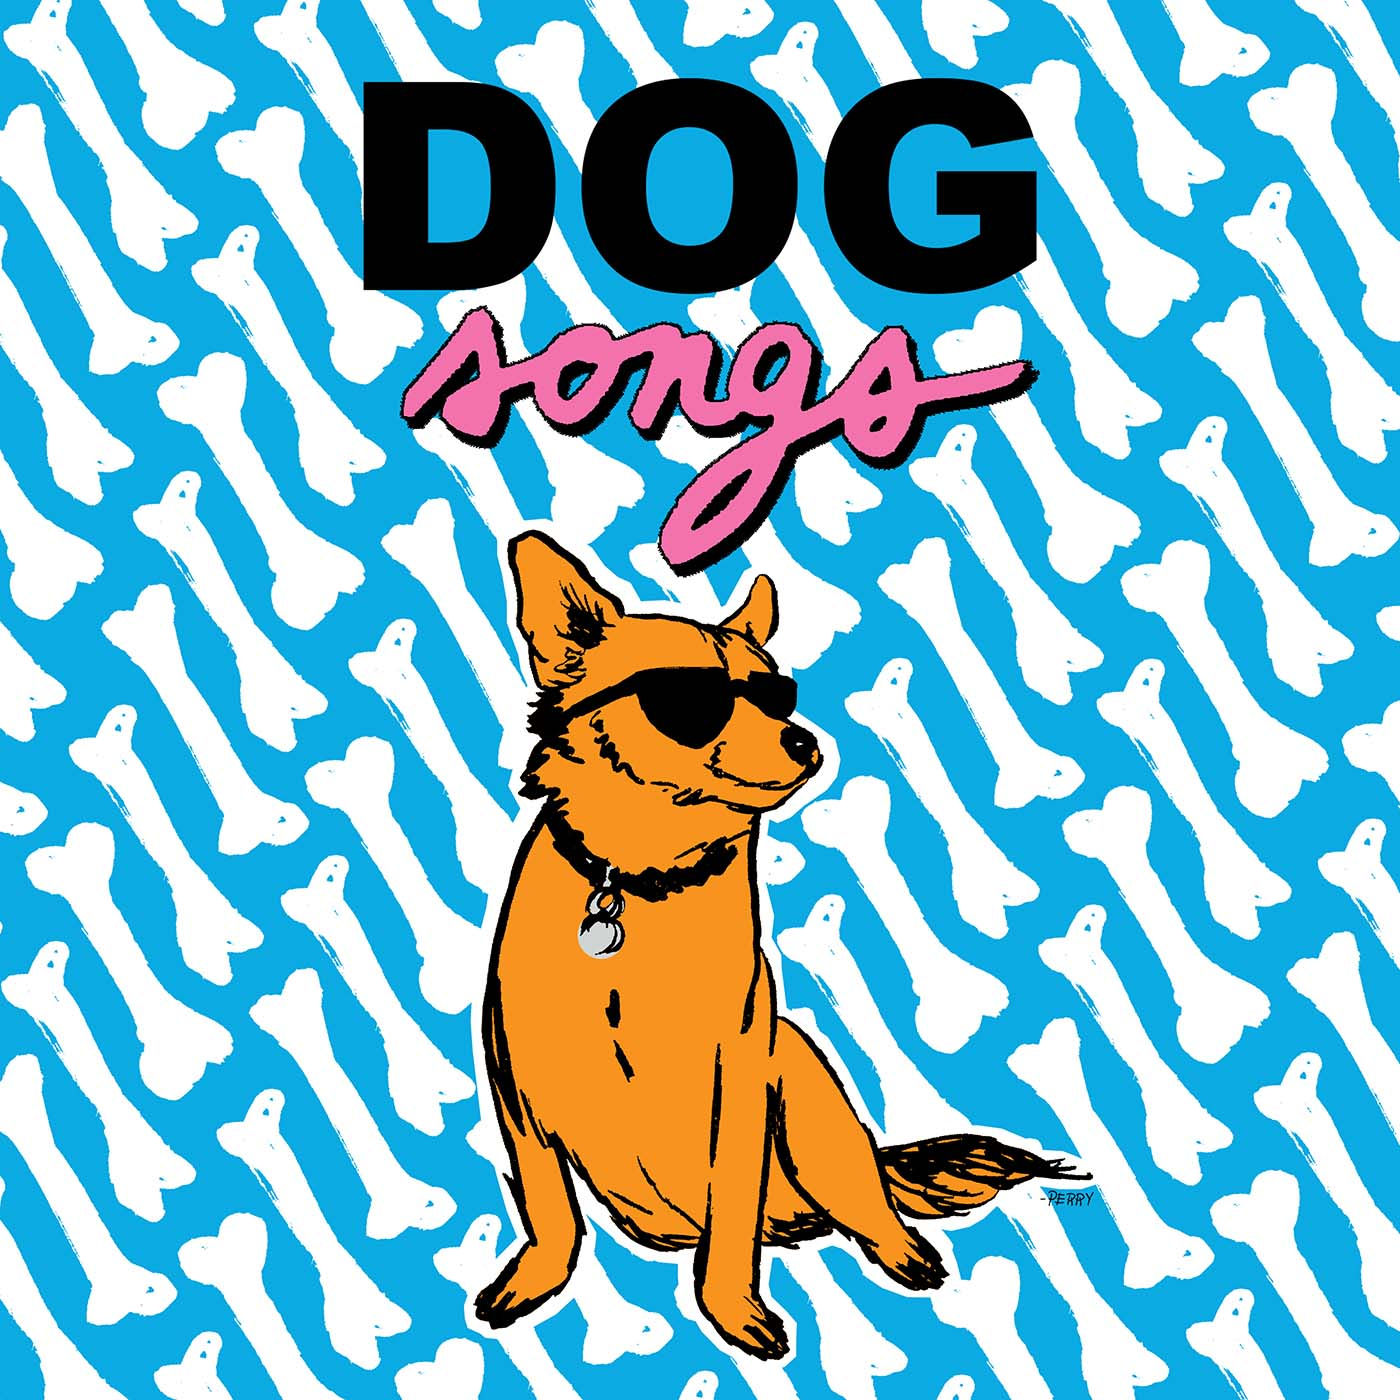 2017 clipart latest songs vector free Dog Songs! - The Doubleclicks vector free